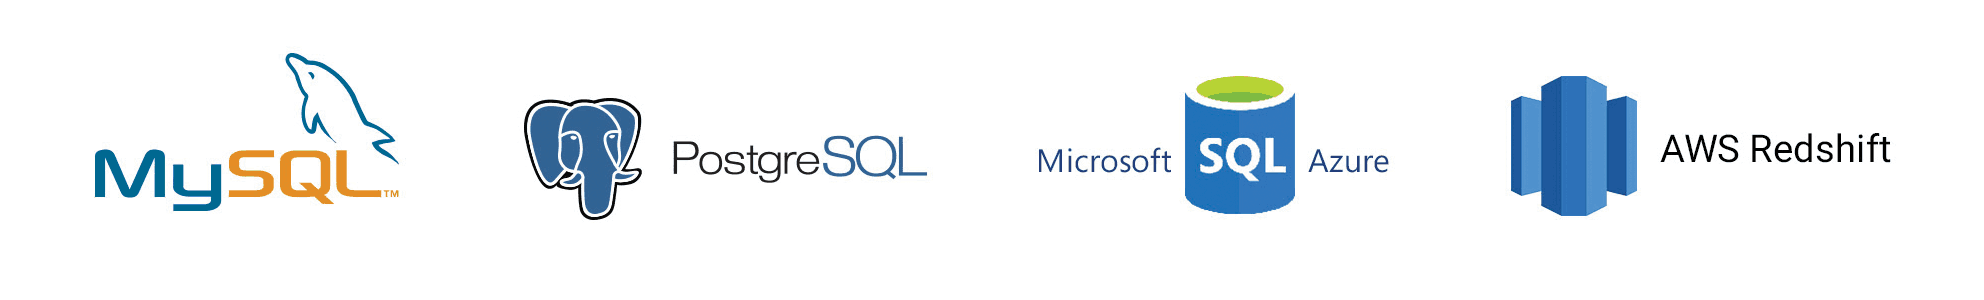 Supported SQL Databases in Databox